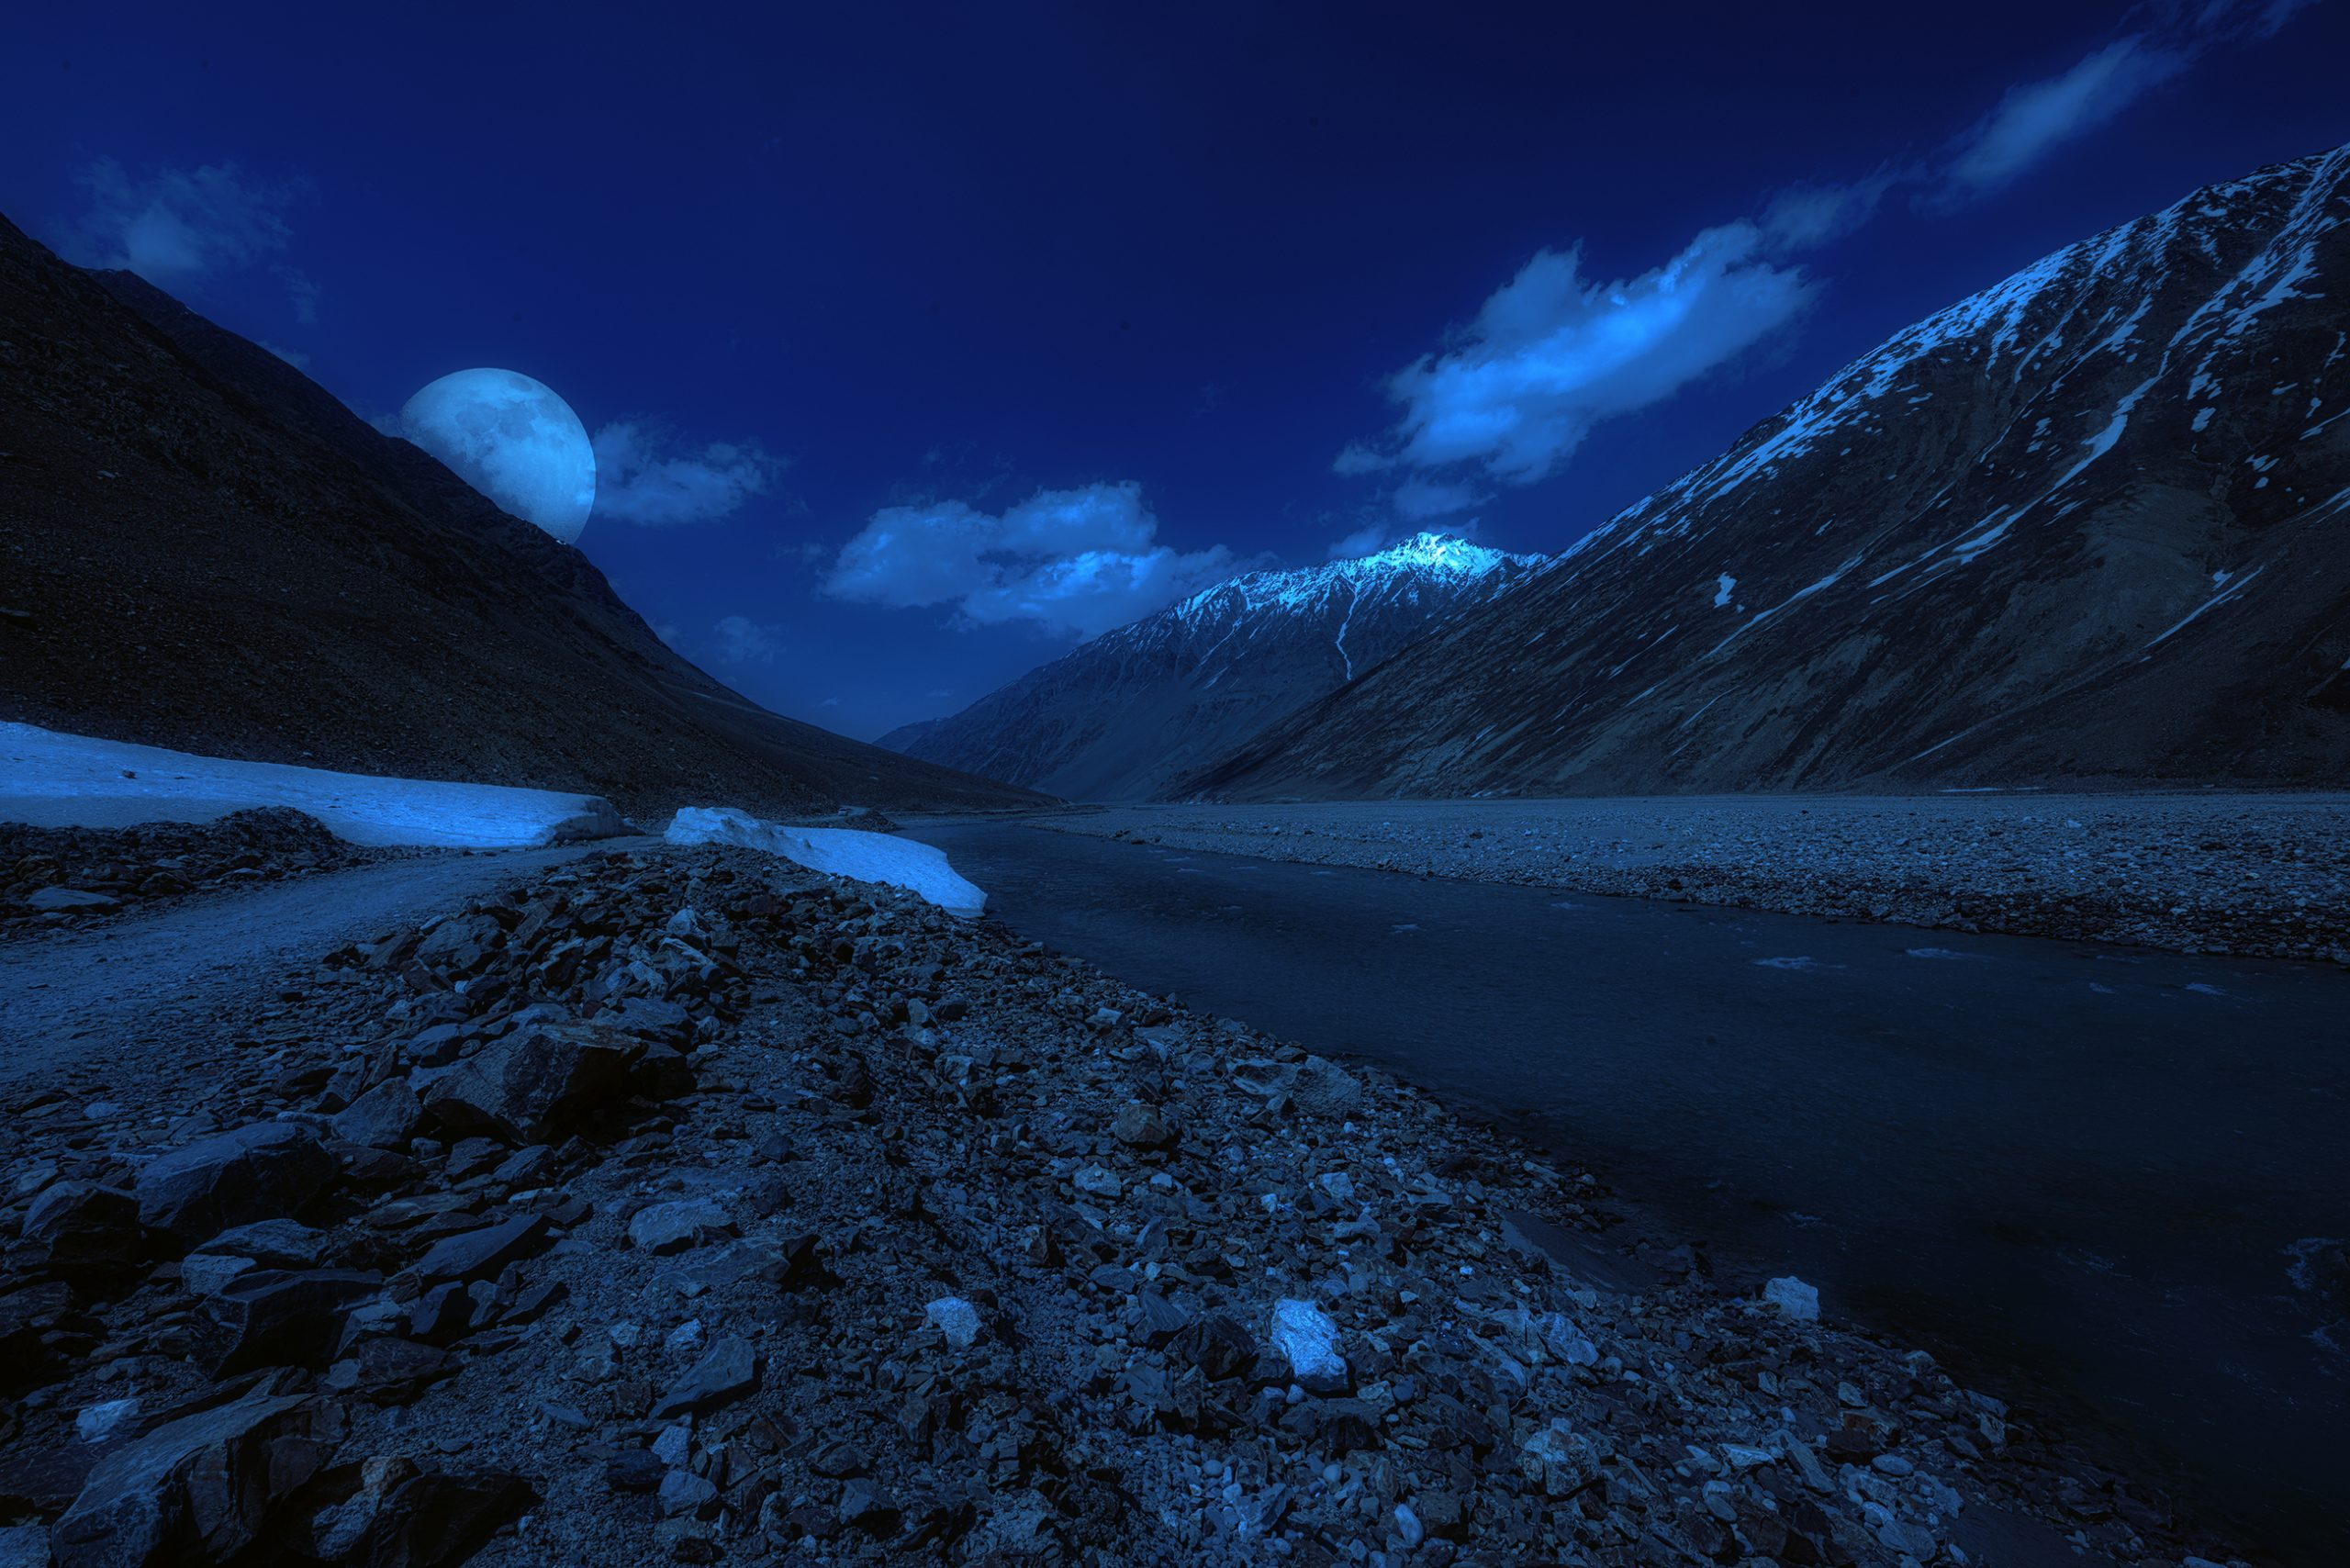 Night view of mountains